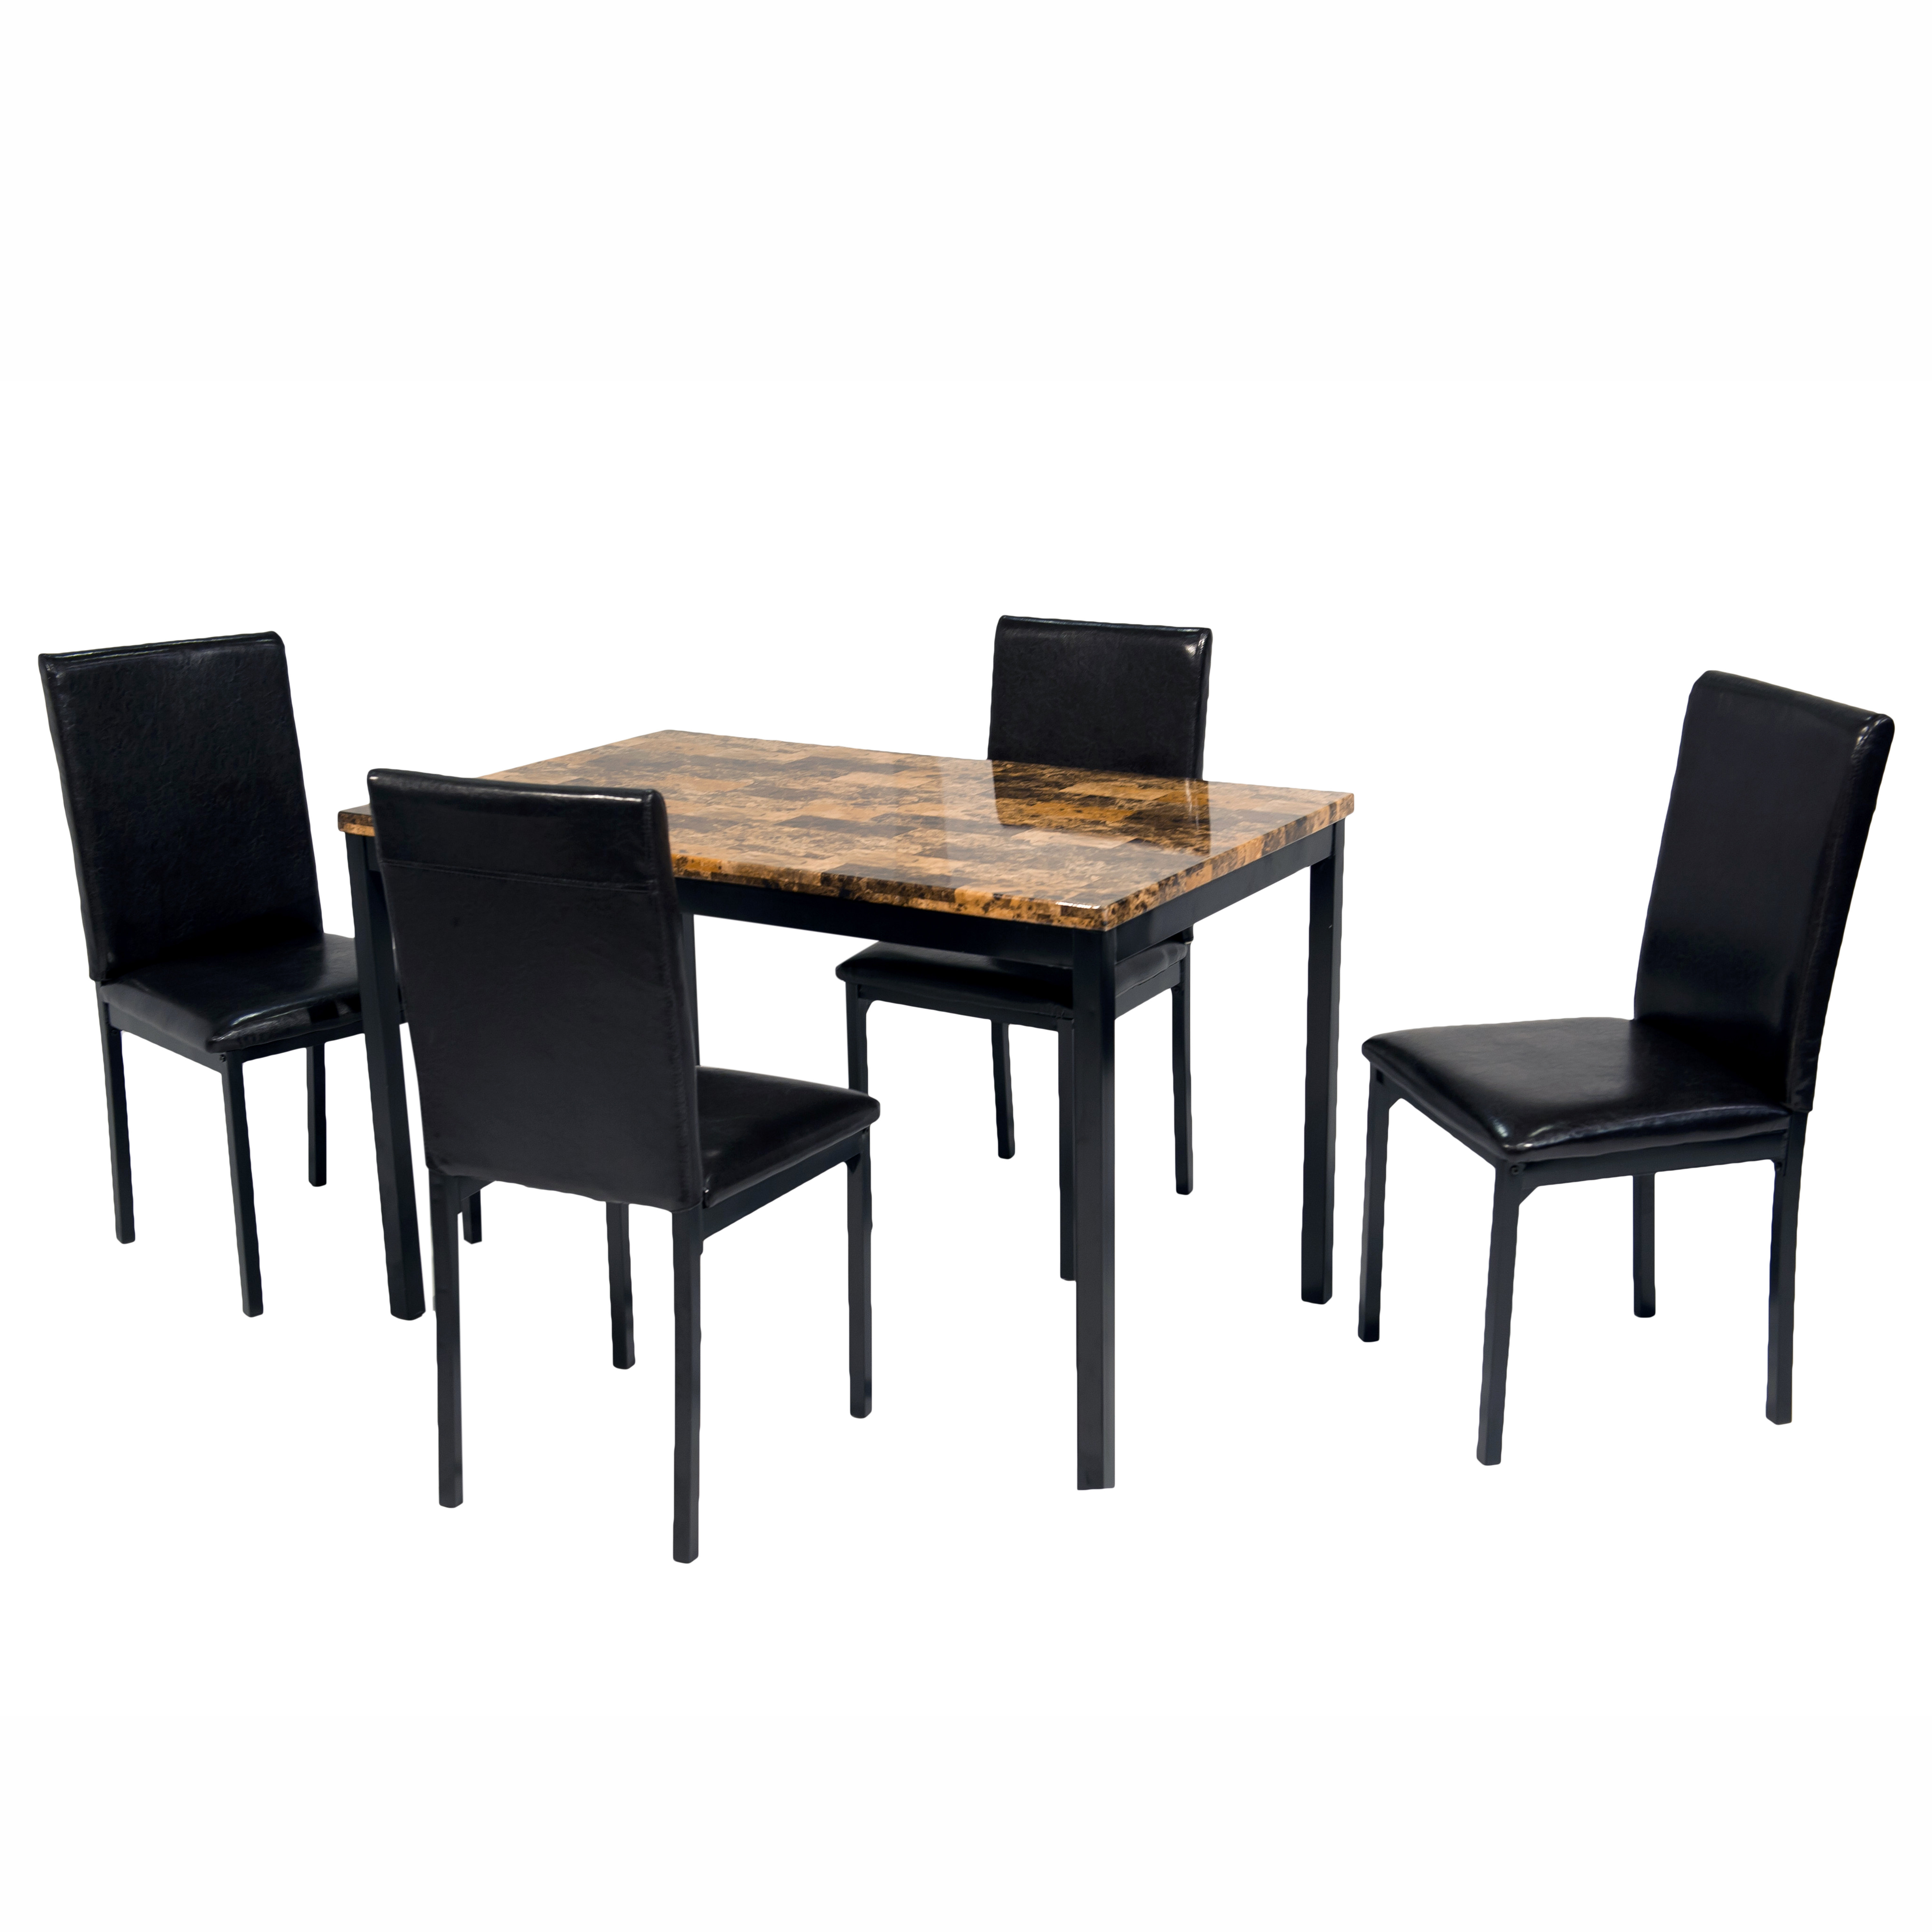 Della 5 Piece Dining Set With Most Up To Date Shepparton Vintage 3 Piece Dining Sets (View 14 of 20)